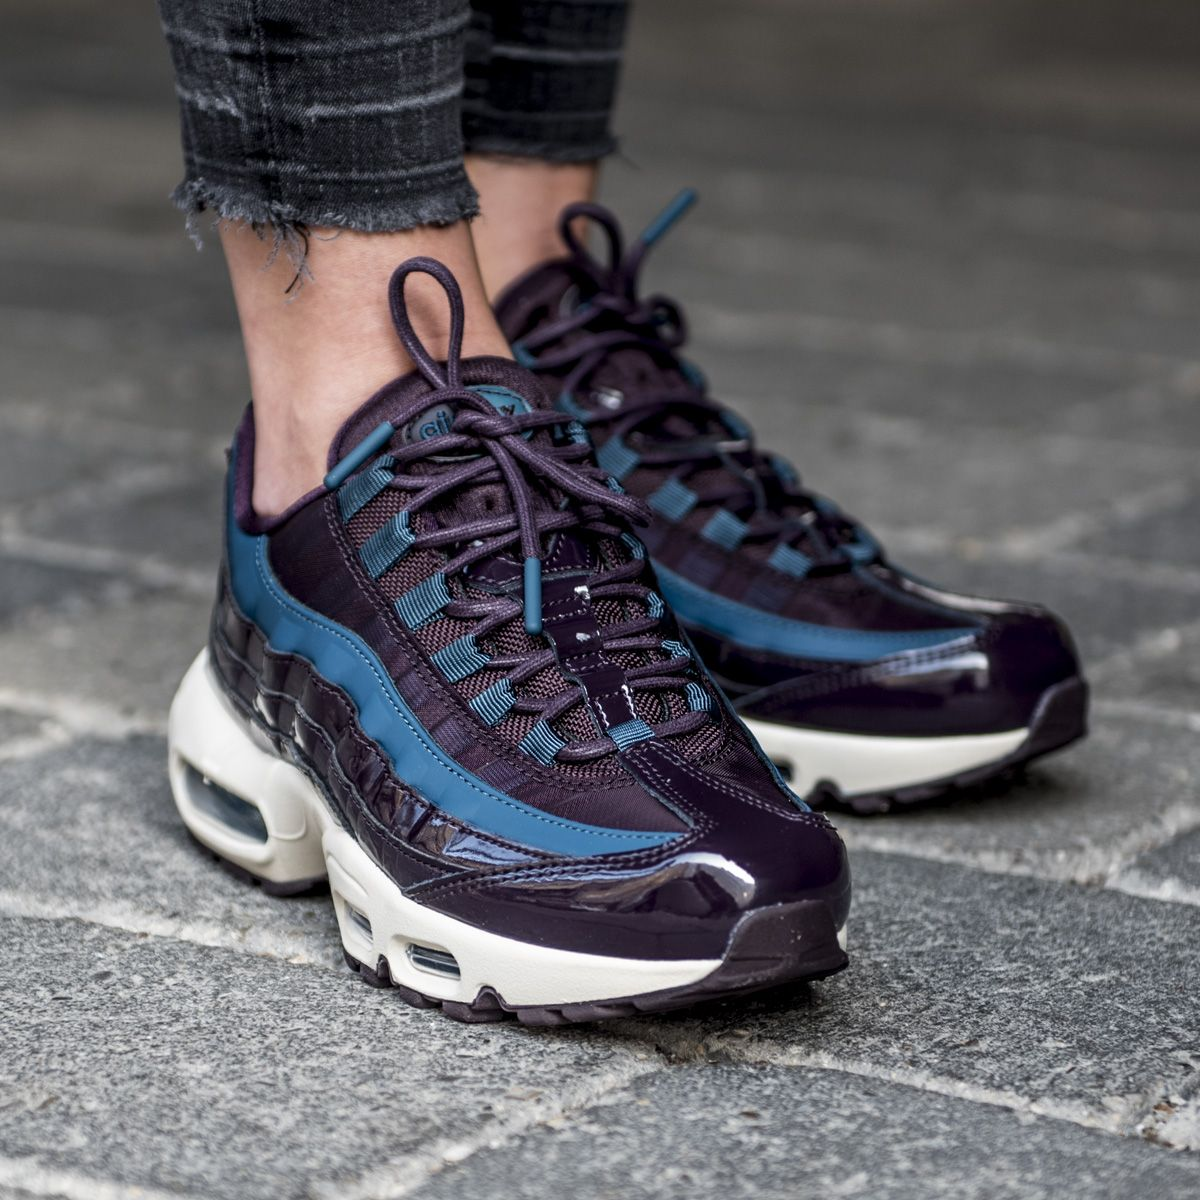 Nike Wmns Air Max 95 SE PRM in port wine   space blue colorway. Now ... d06c82013e1